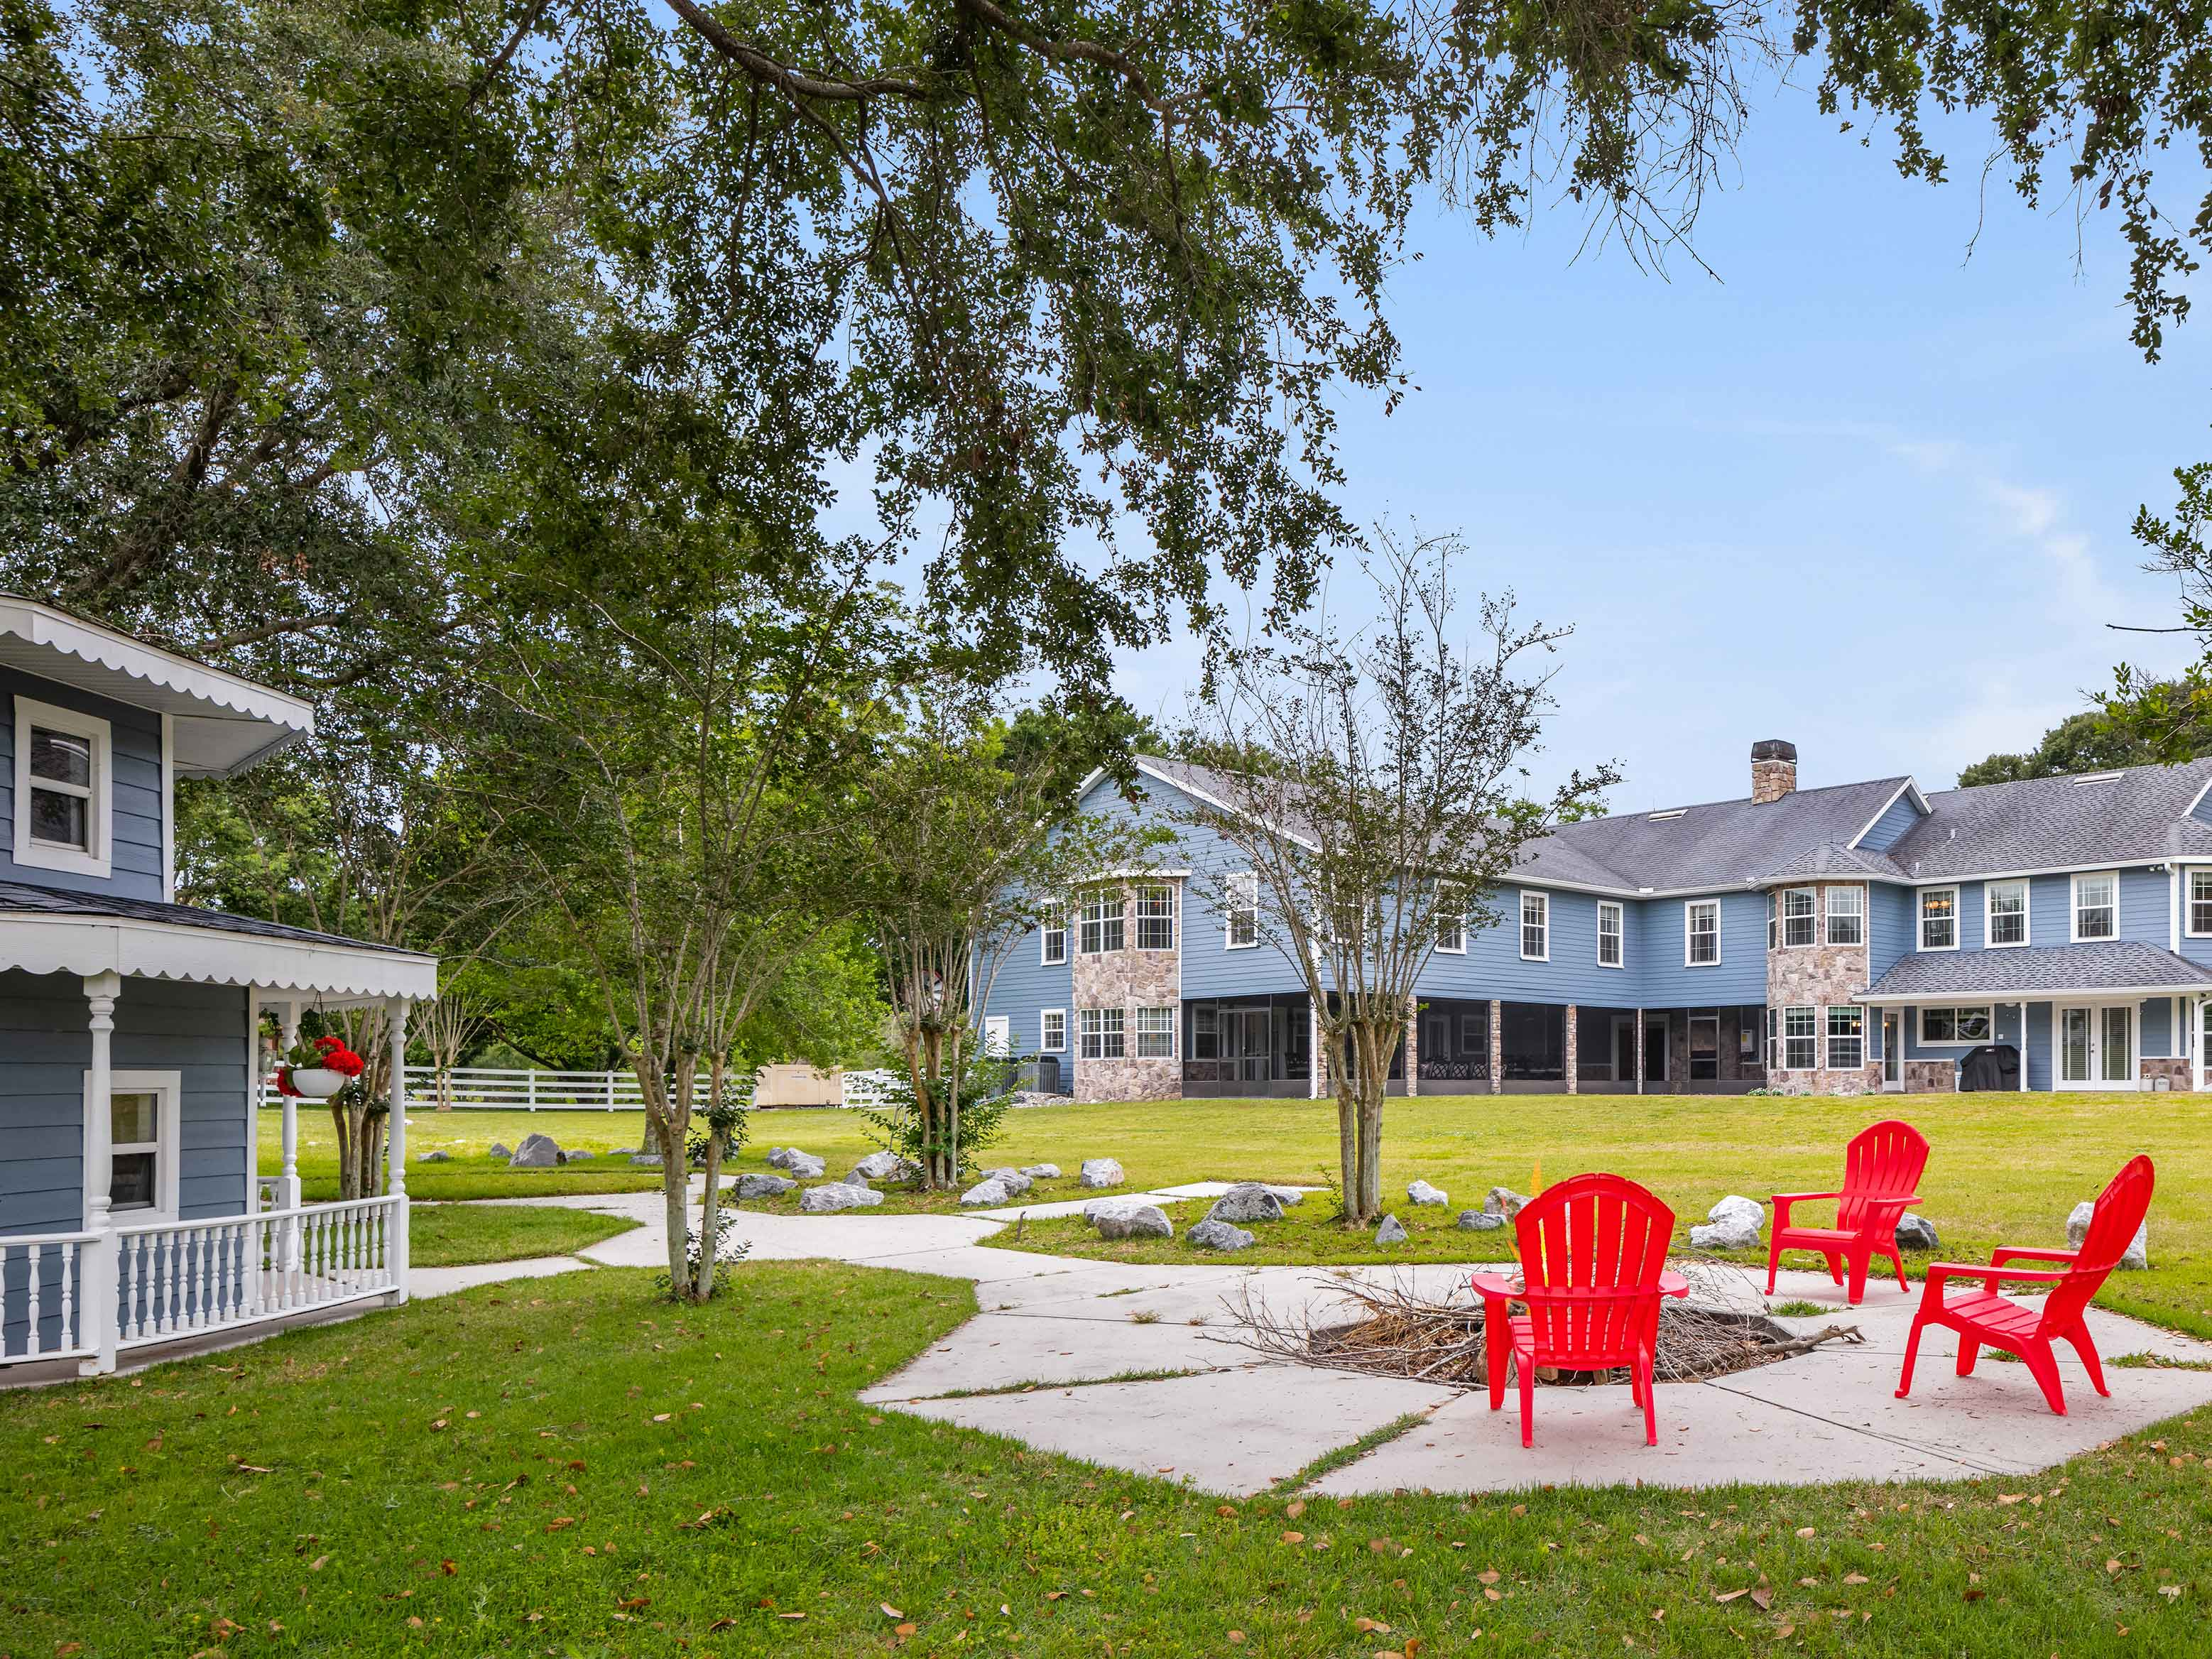 A two-story children's playhouse, equipped with electrics and air conditioning, and its own fenced backyard is just one of the star attractions of this Florida hobby farm.